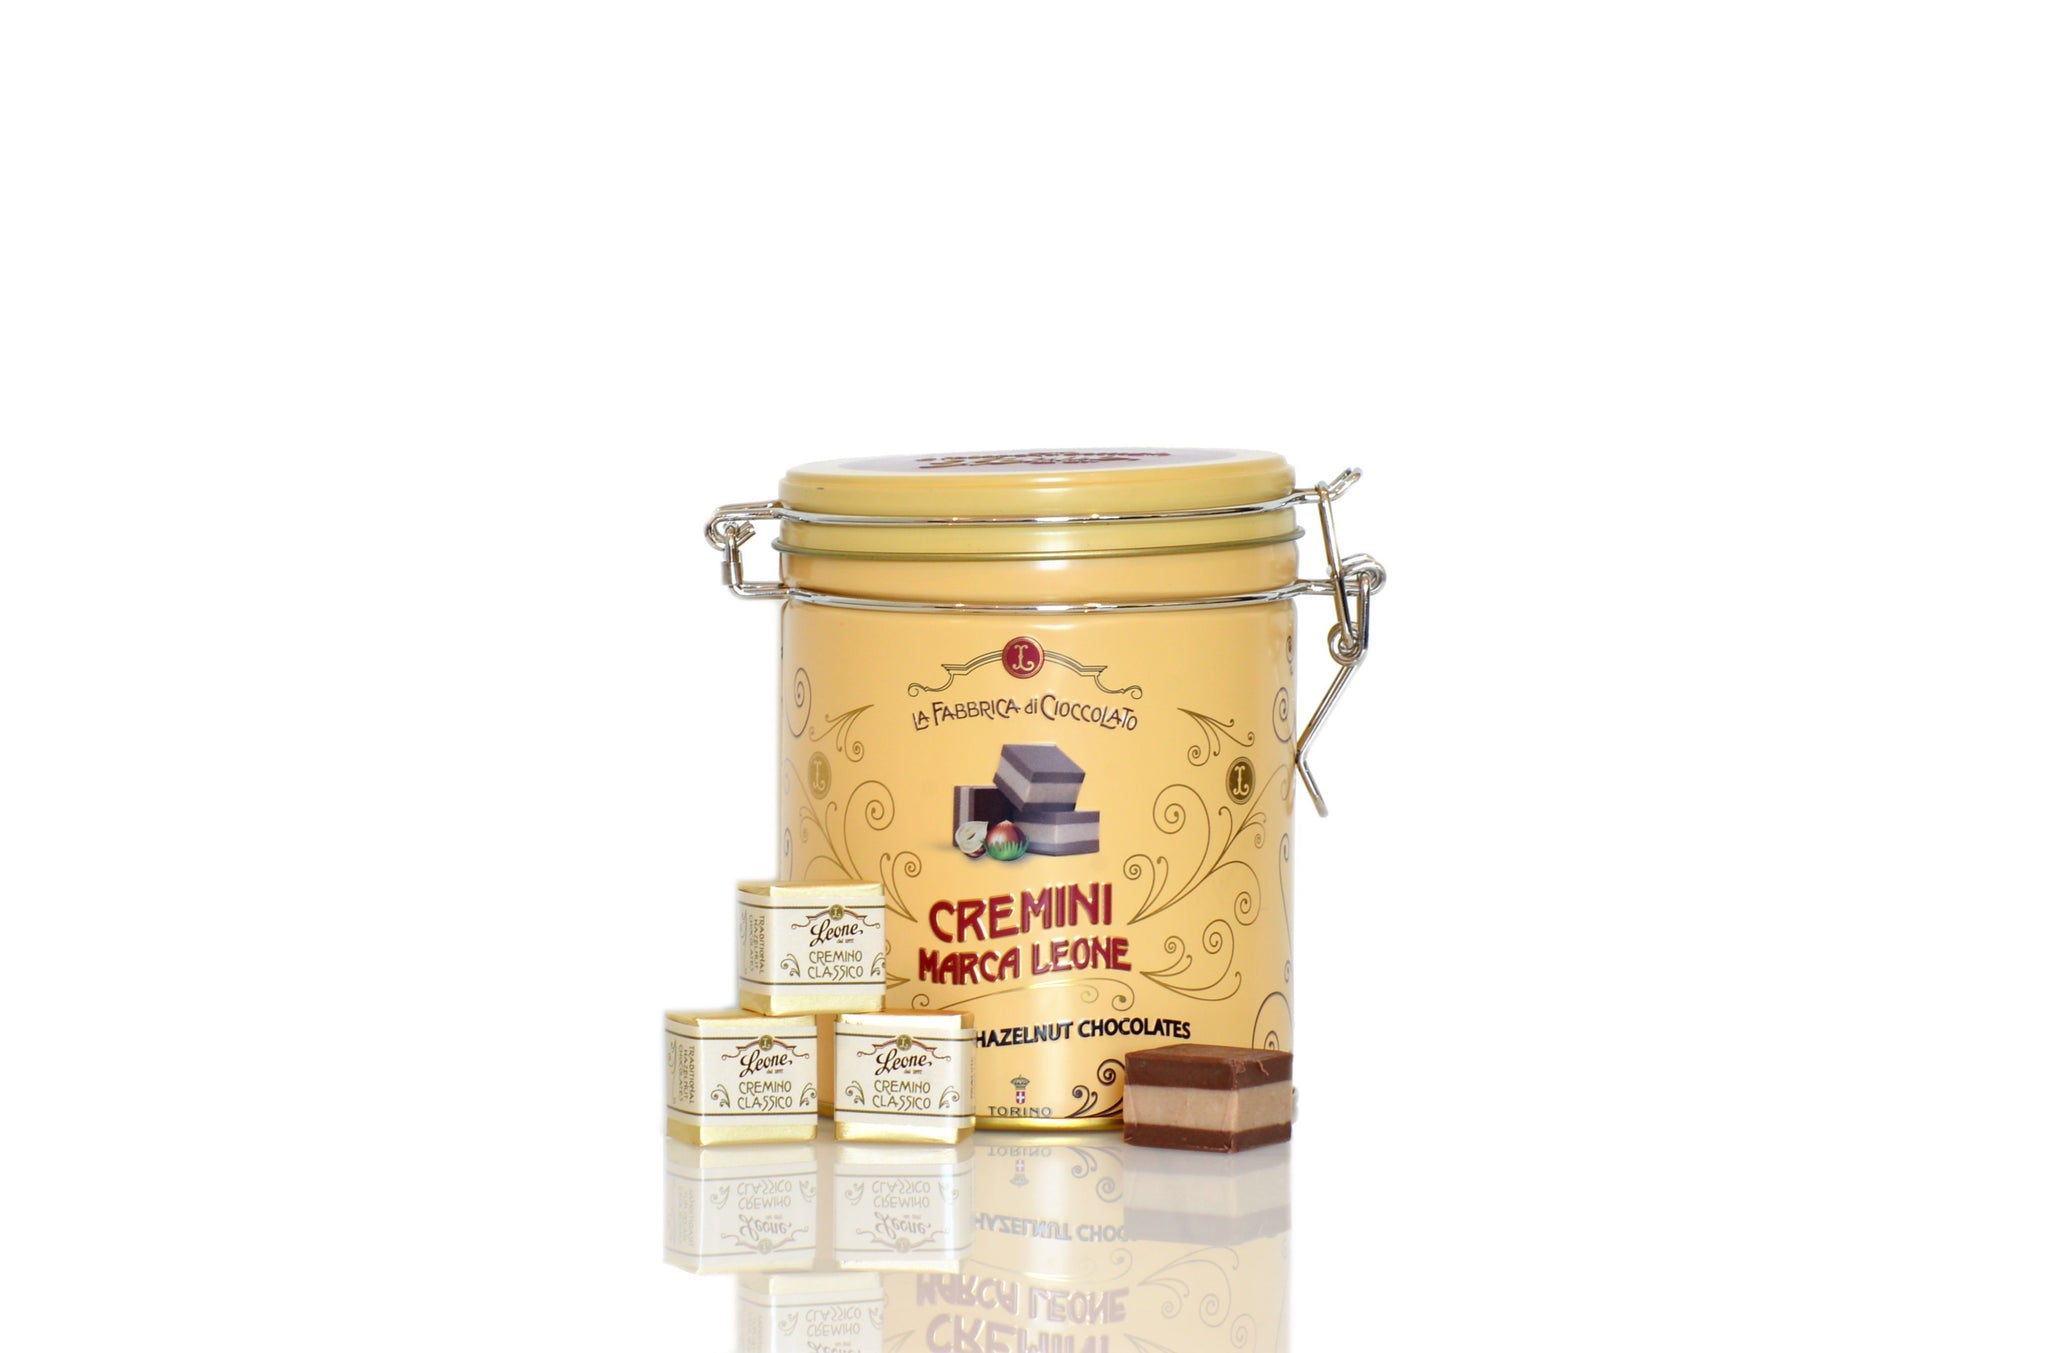 Pastiglie Leone Cremini Chocolate Hazelnut Praline from Piedmont | Shop the Red Beetle